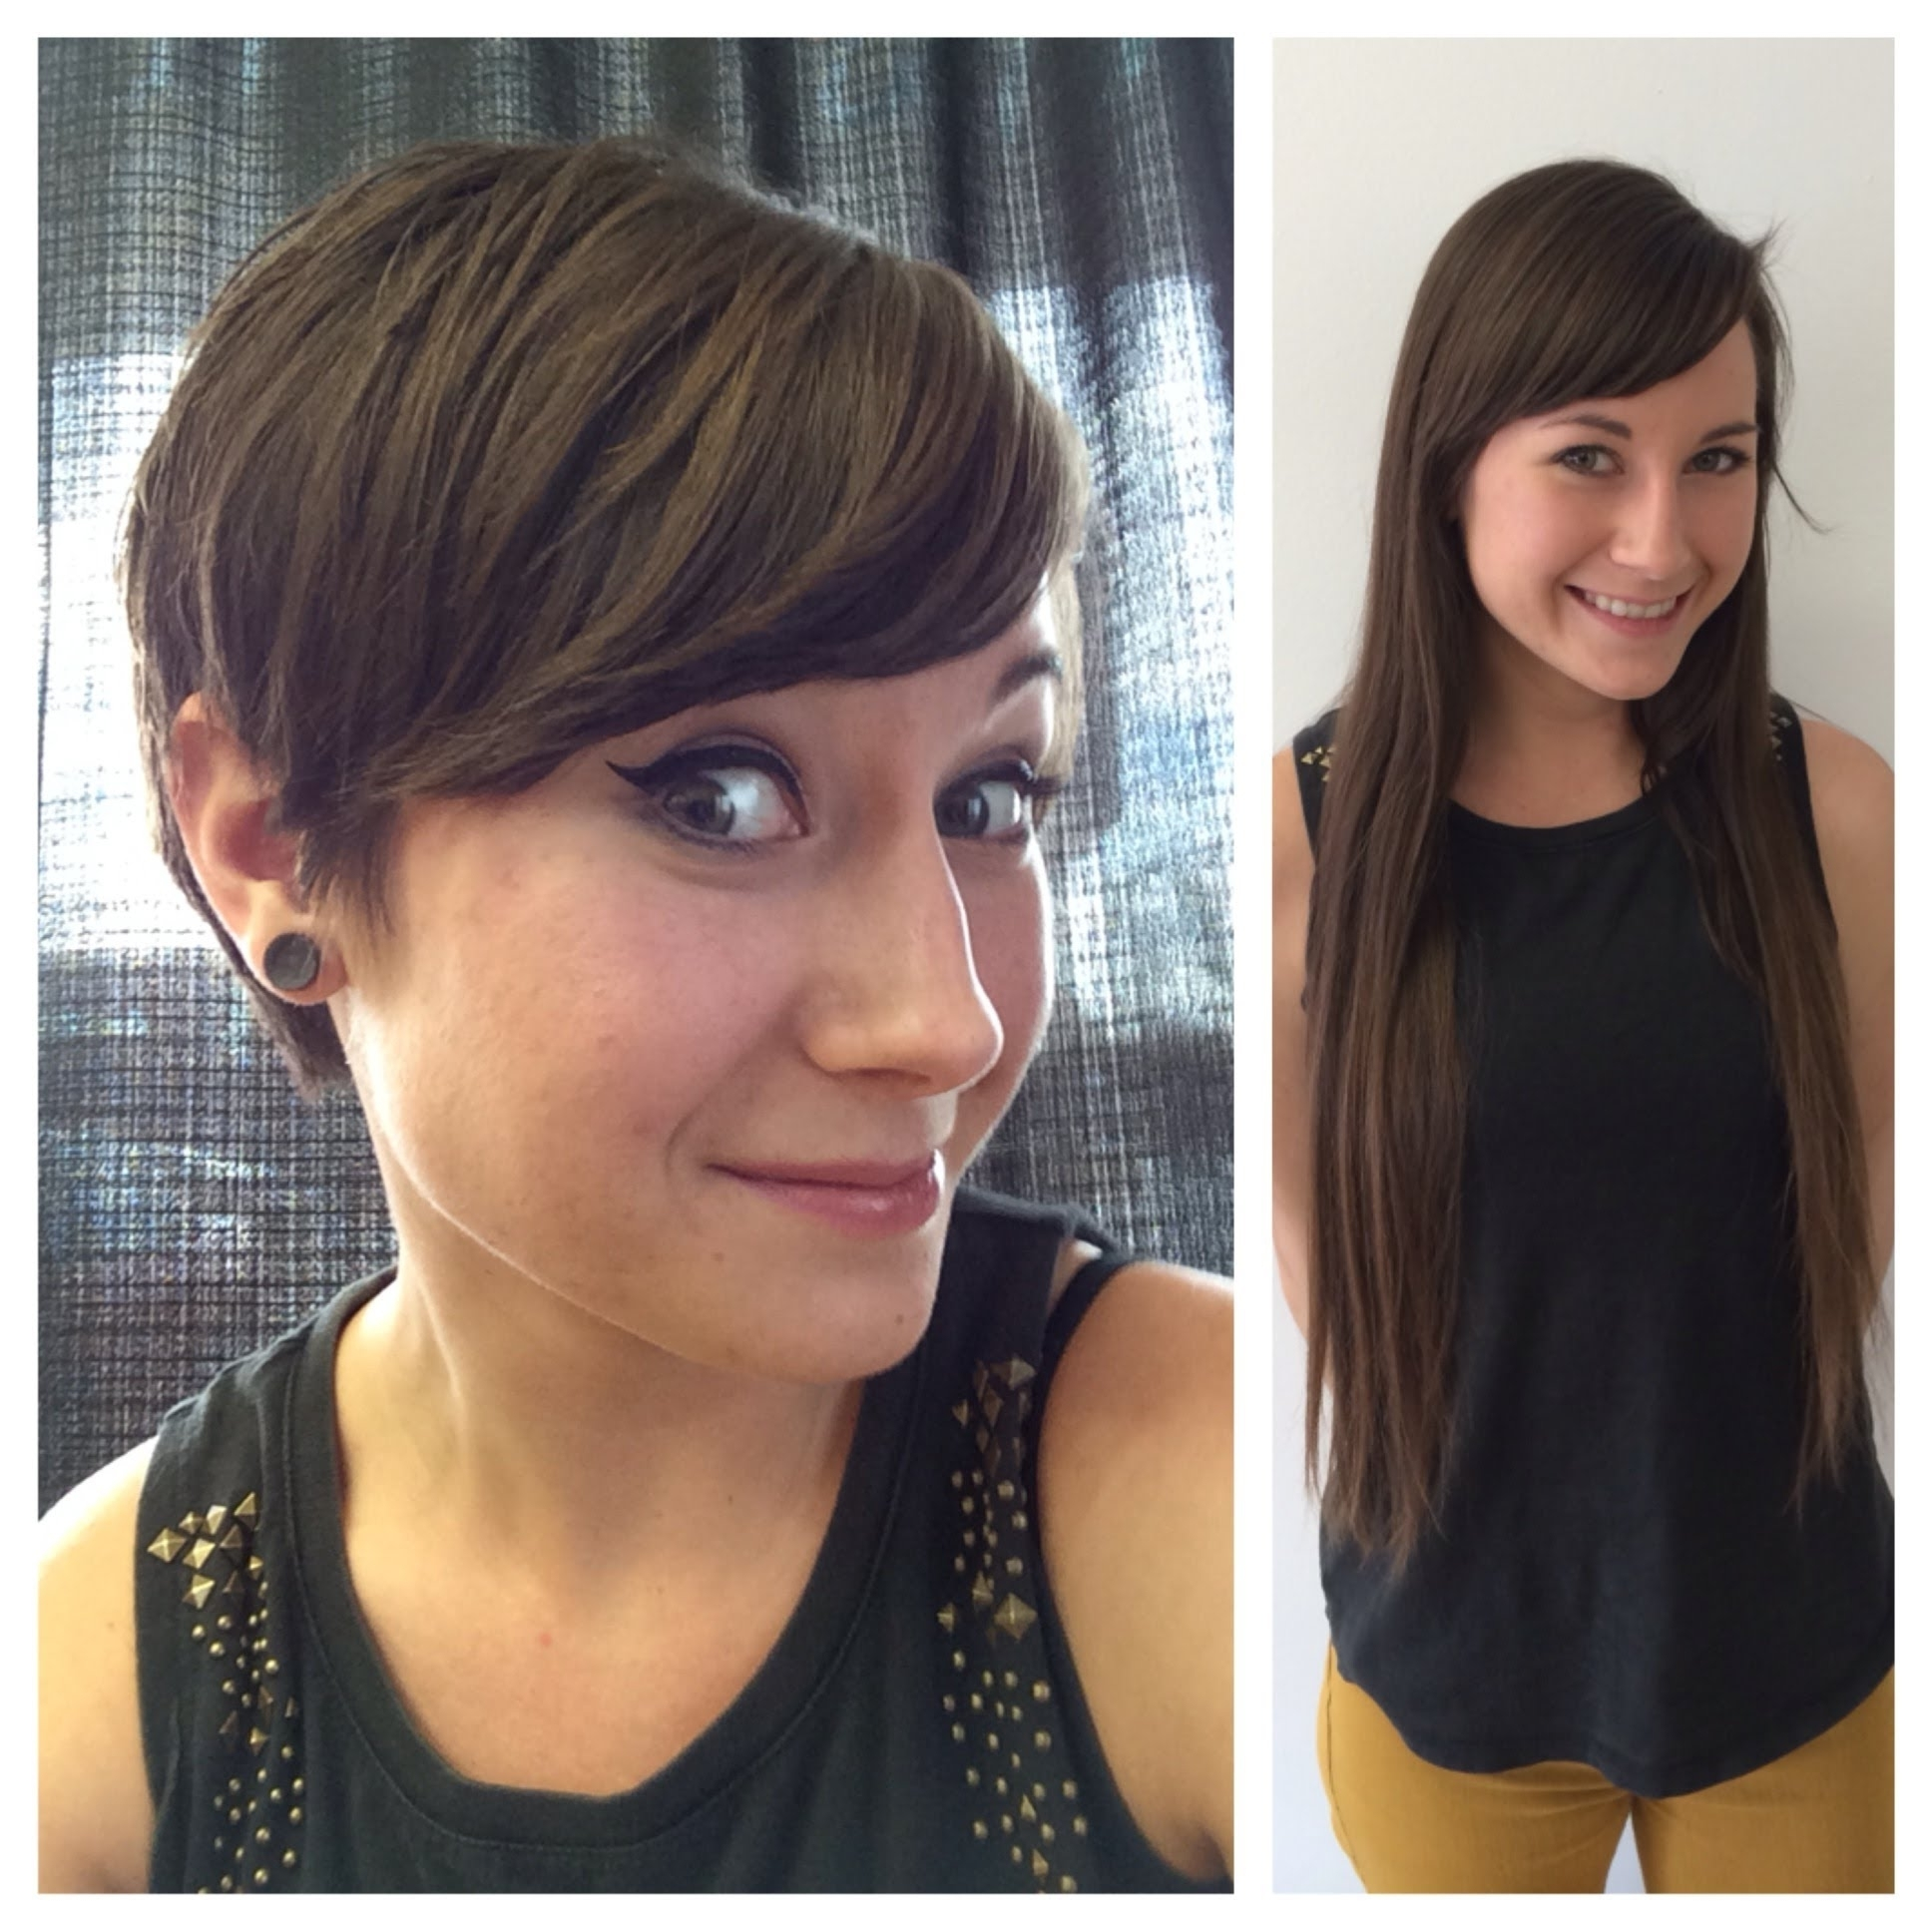 Haircut On Long Hair Brunette To A Pixie Hair Cut Anne Hathaway In Recent  Brunette Pixie